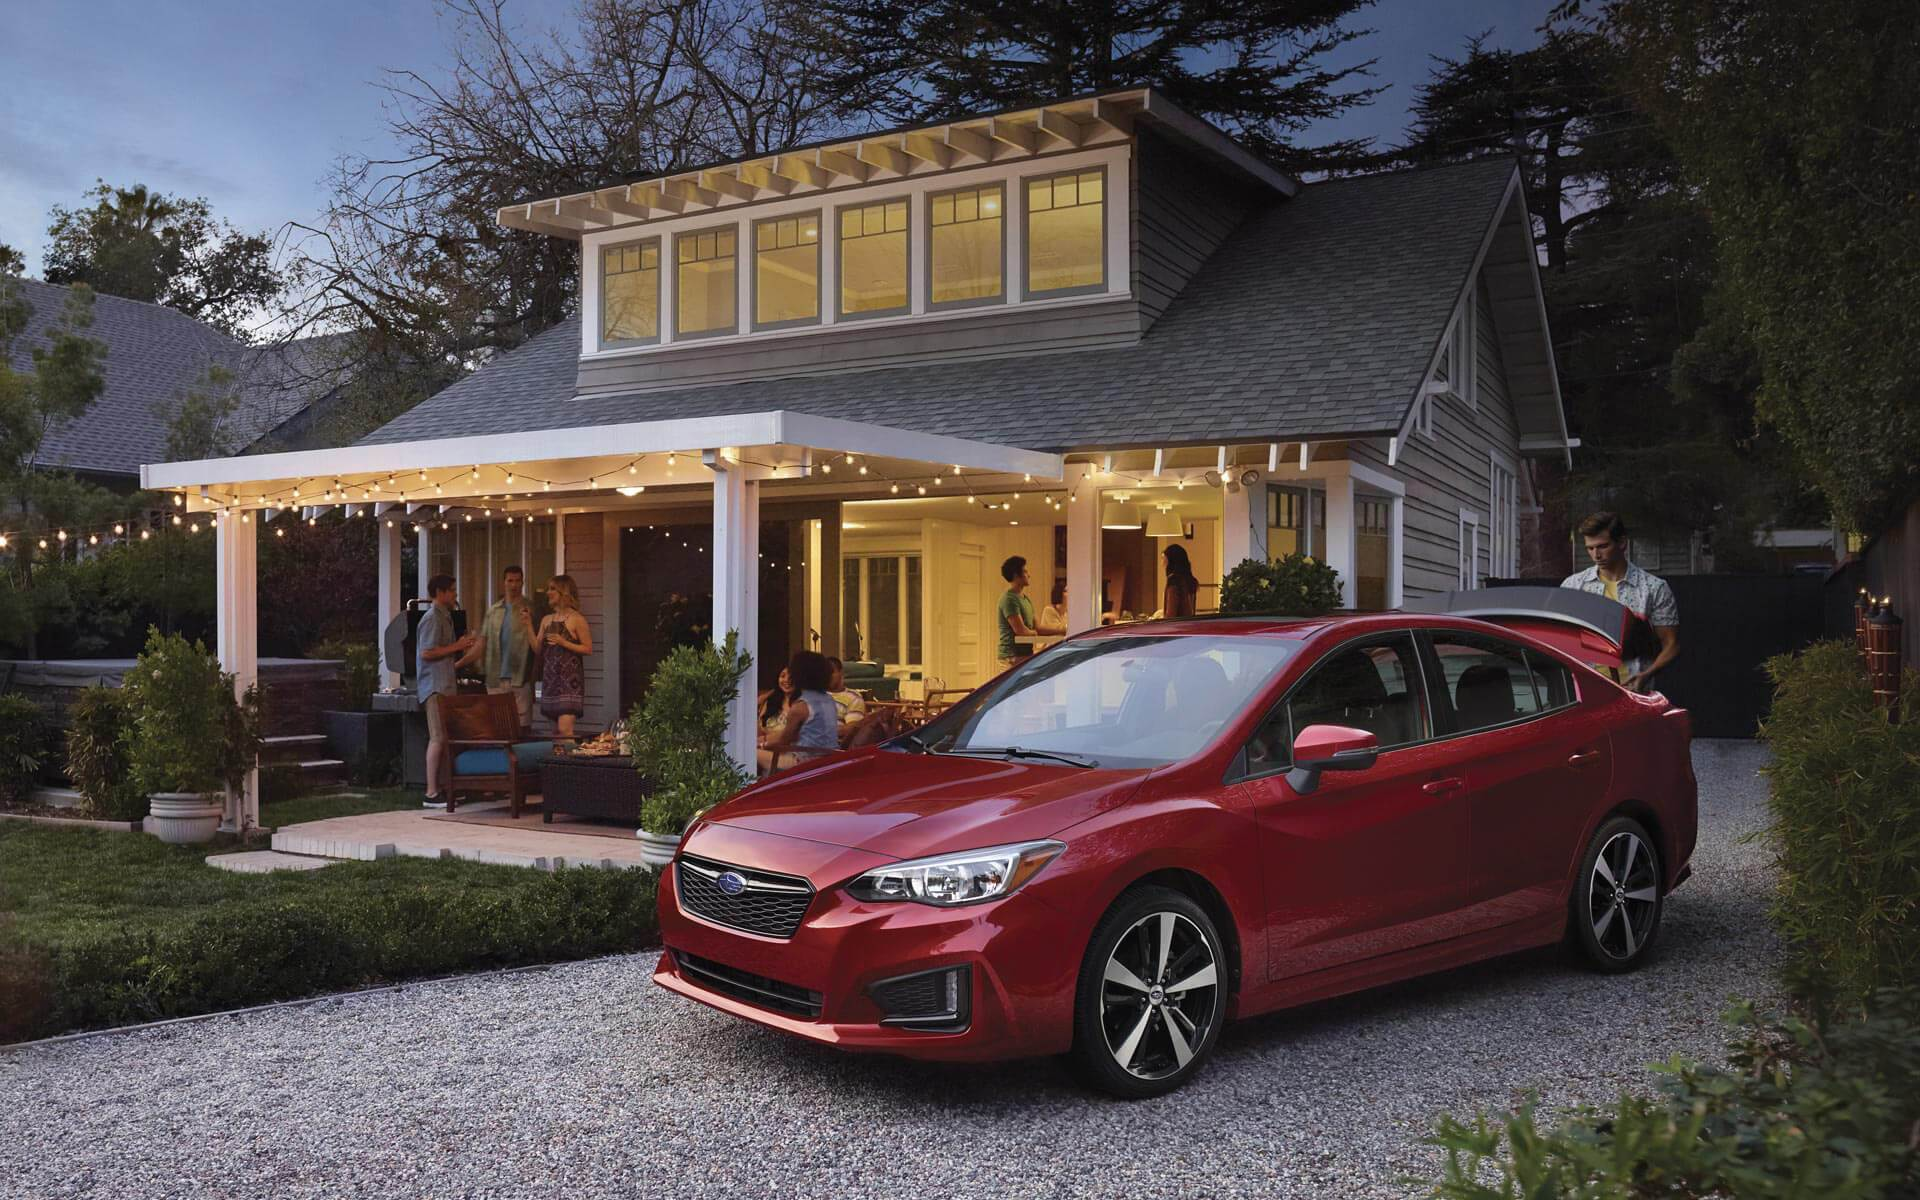 2018 Subaru Impreza for Sale near Folsom, CA